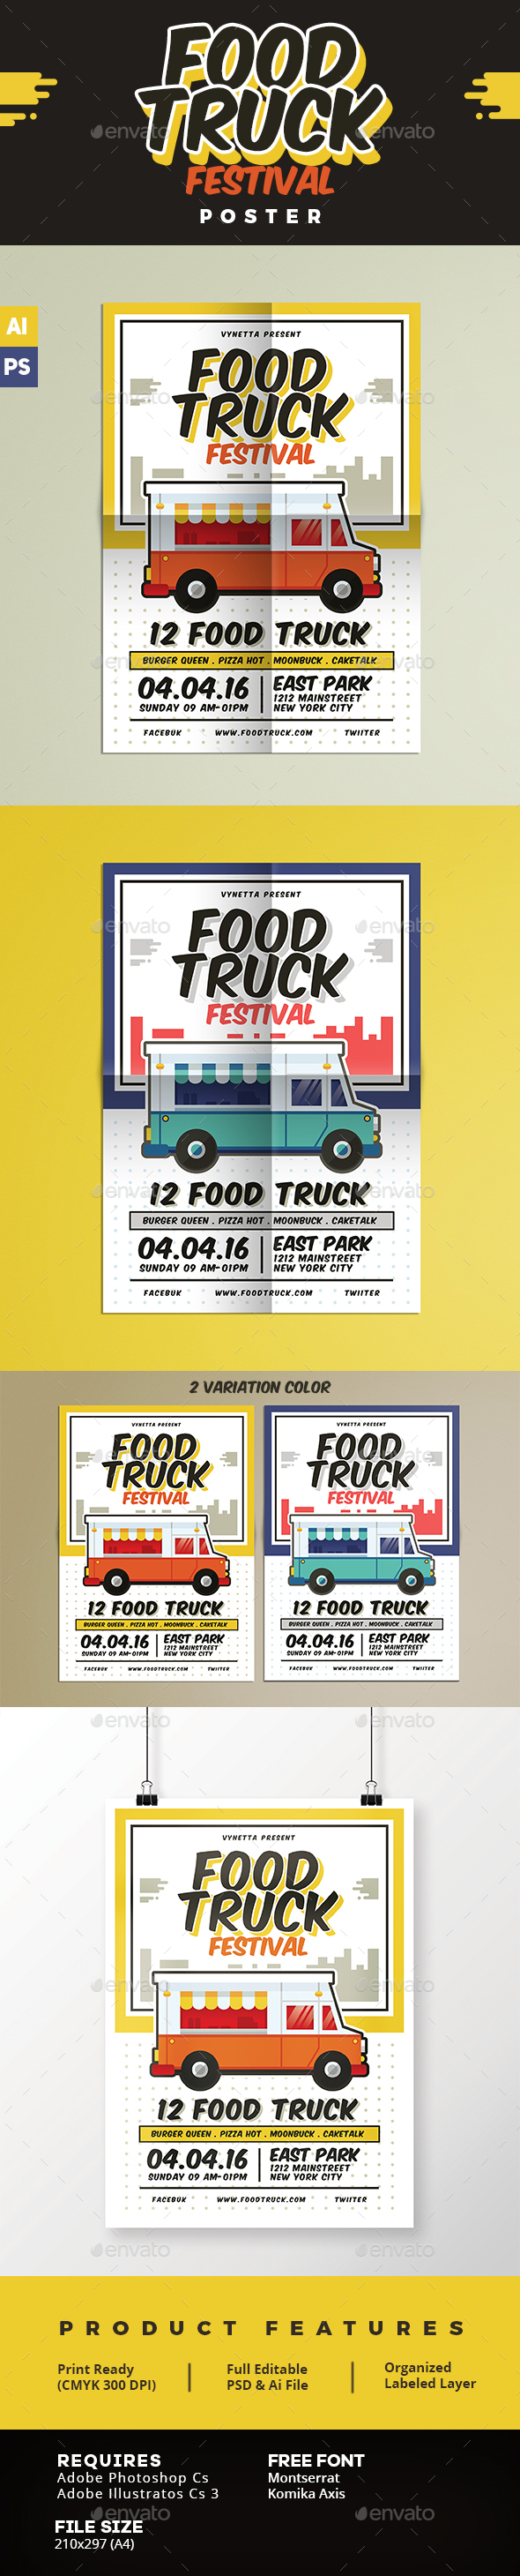 Food Truck Festival Poster - Events Flyers